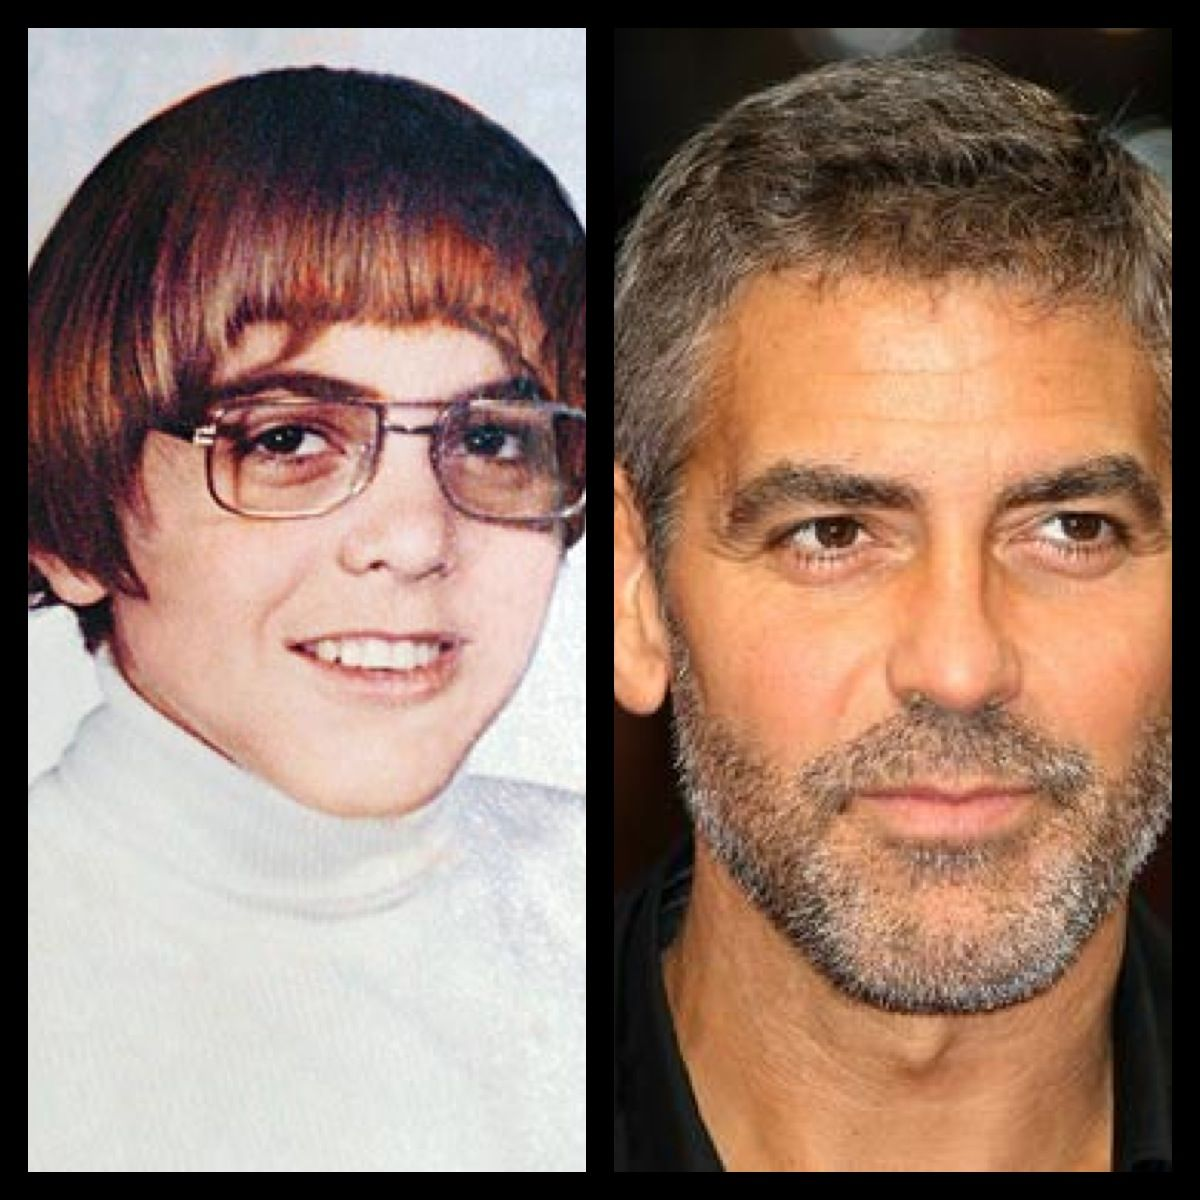 pictures of real people puberty